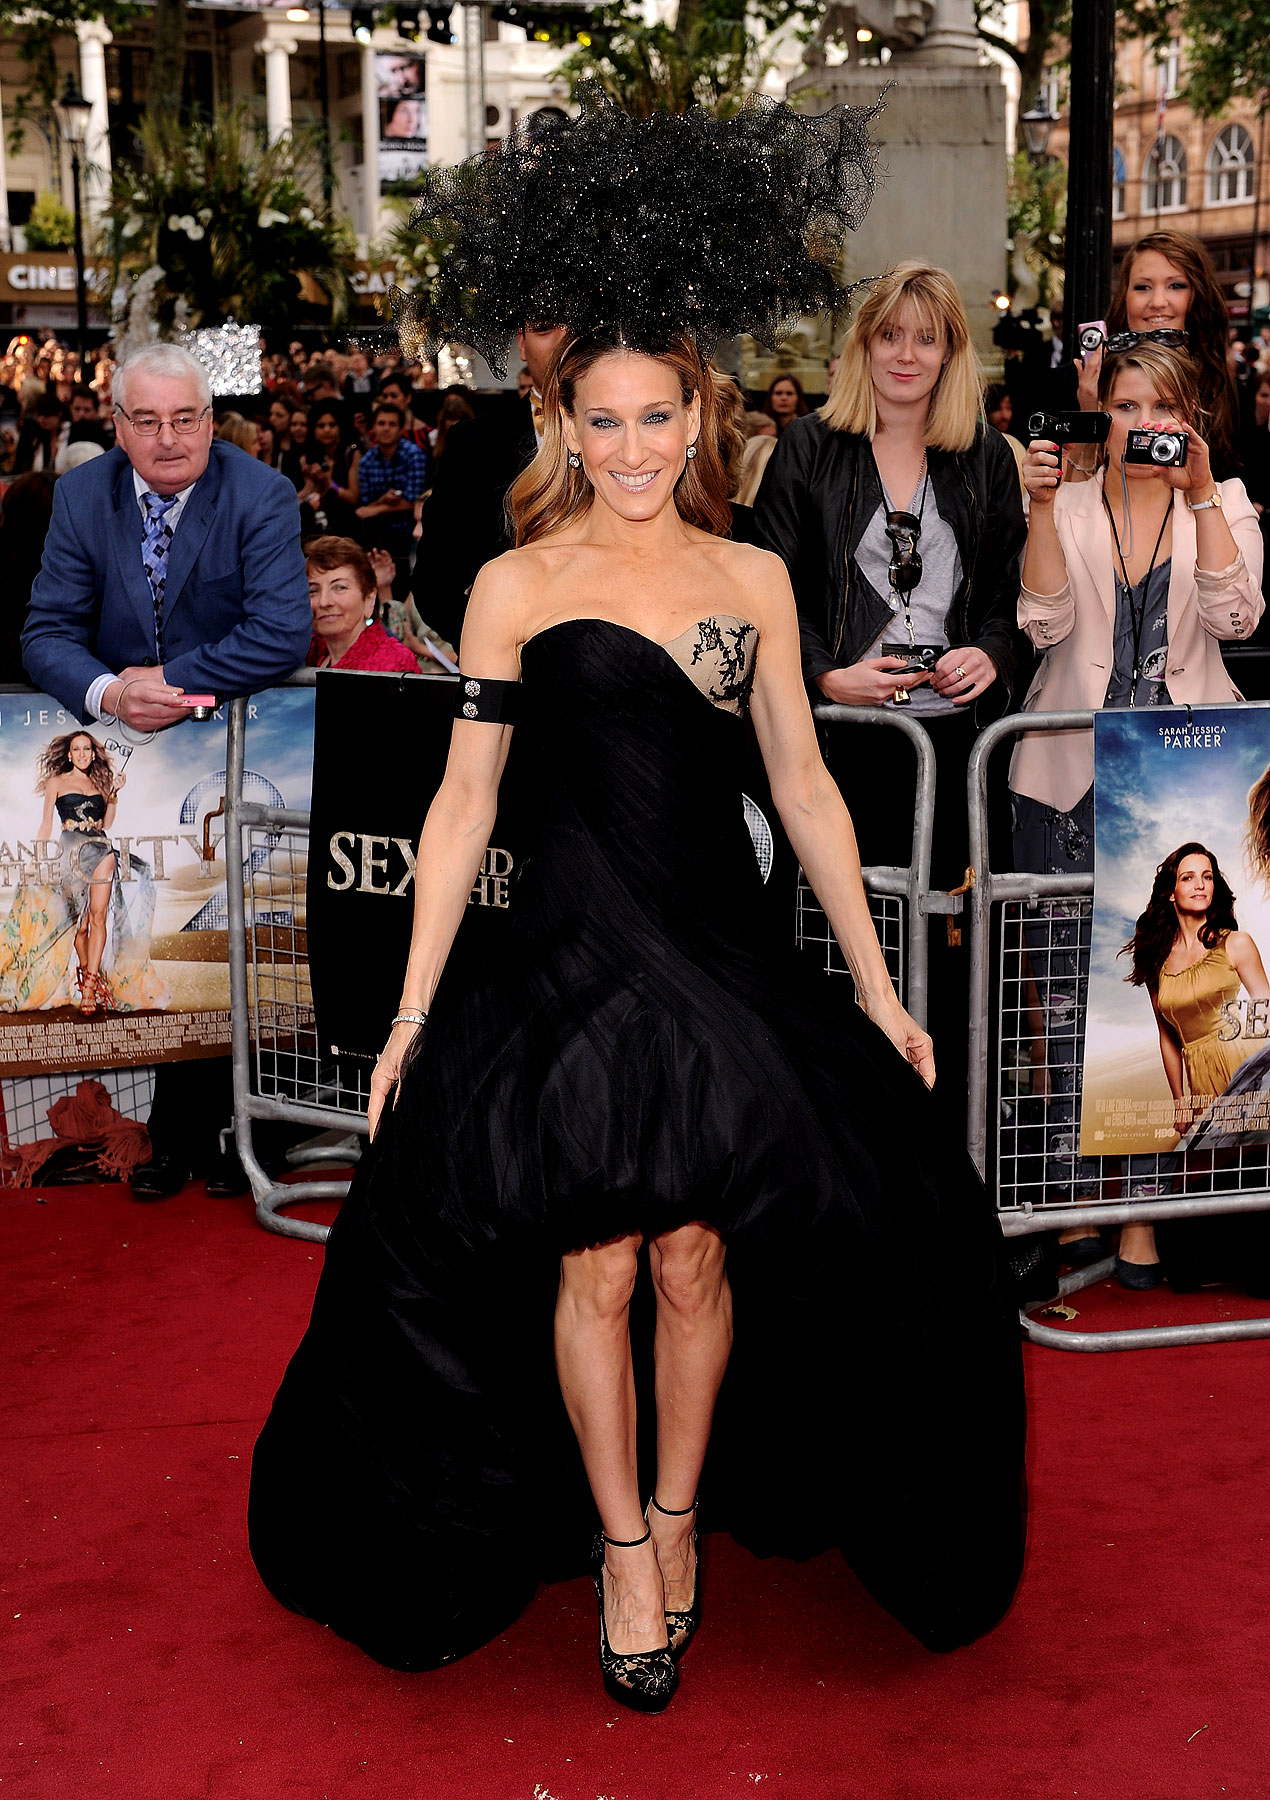 Fashion FAILs & FTWs Of The 'Sex and the City 2′ London Premiere (PHOTOS)